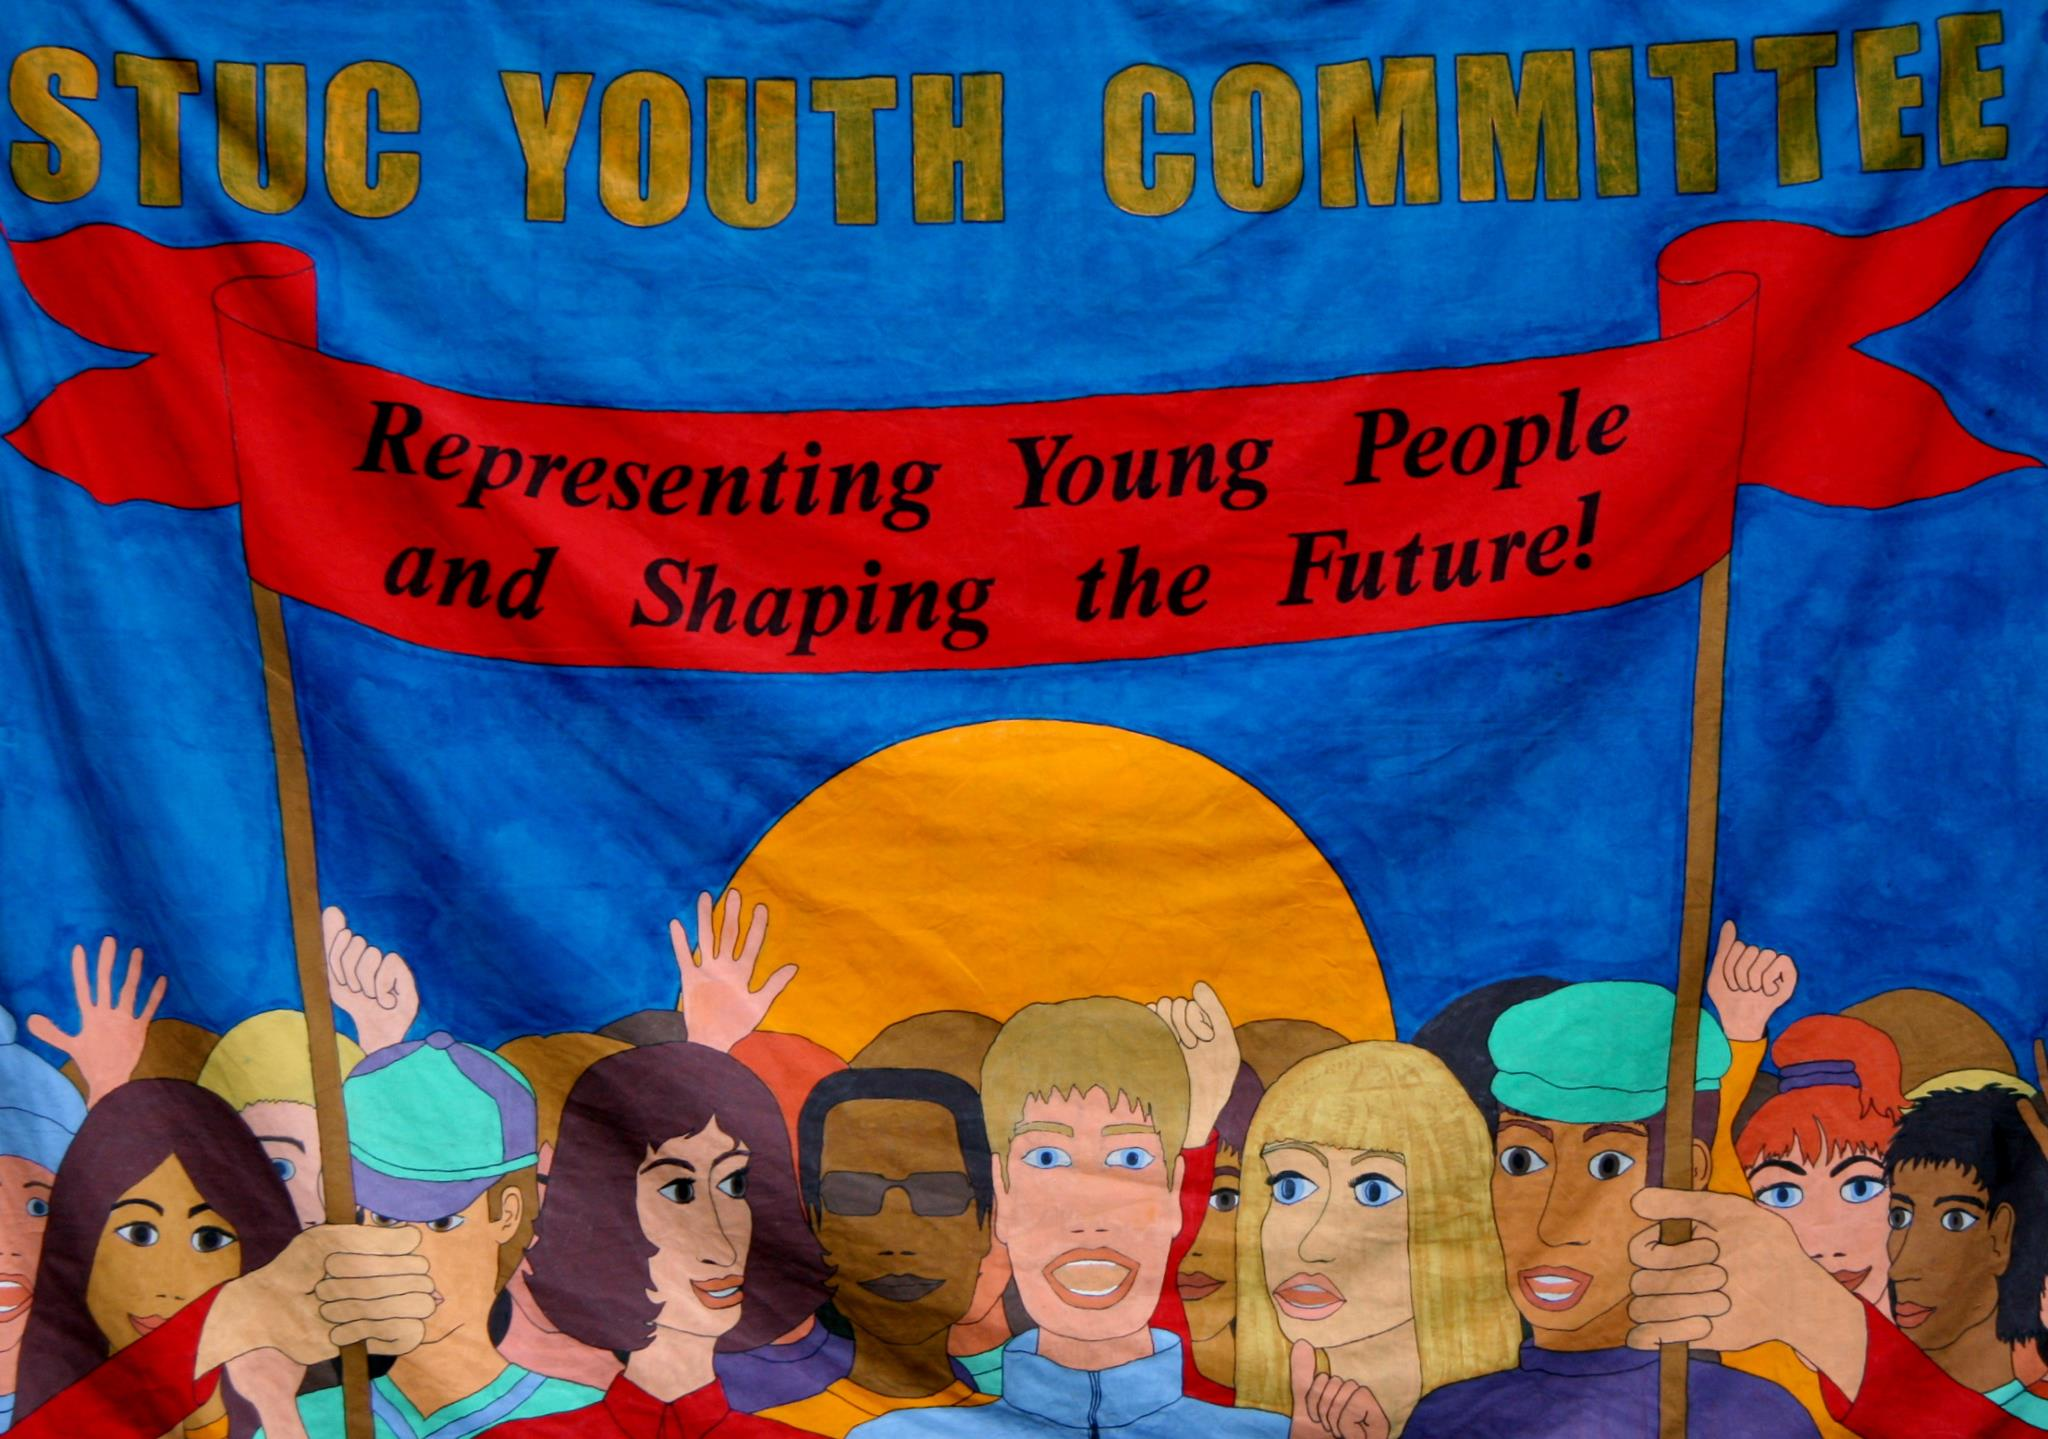 Youth committee banner